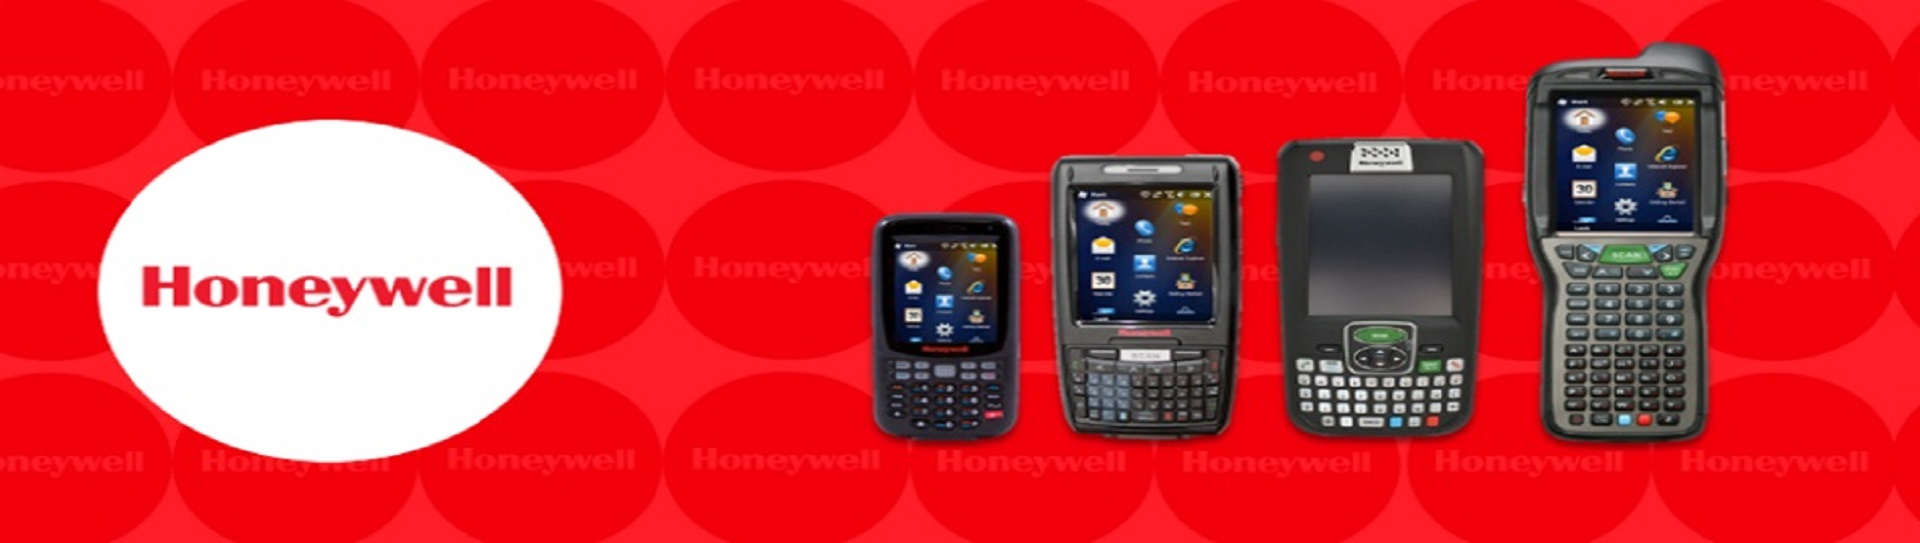 Honeywell - Intermec